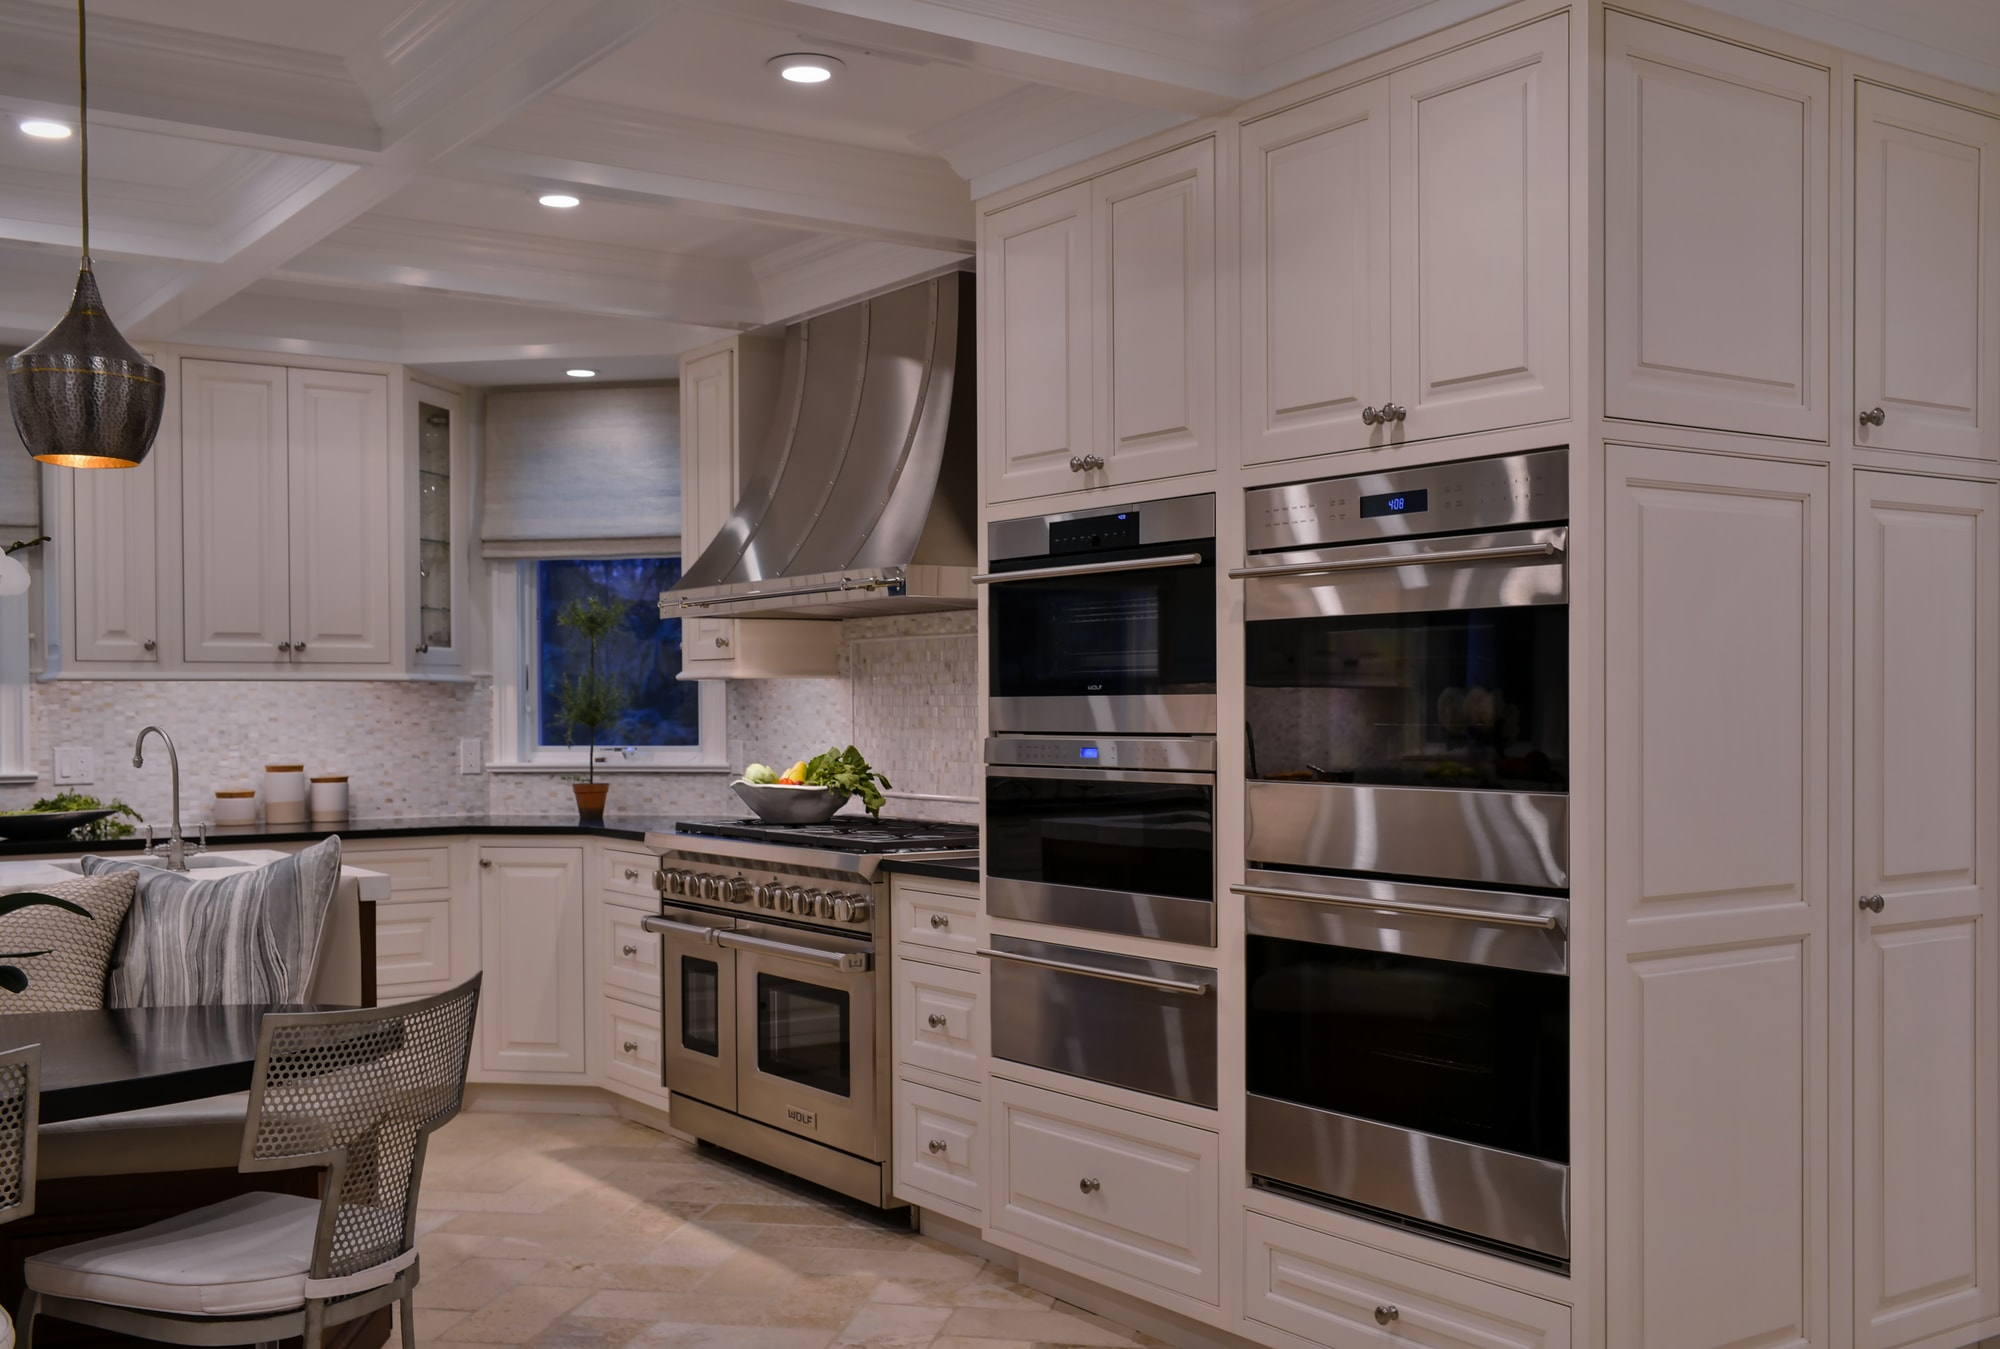 Transitional style kitchen with range oven and speed cooking oven